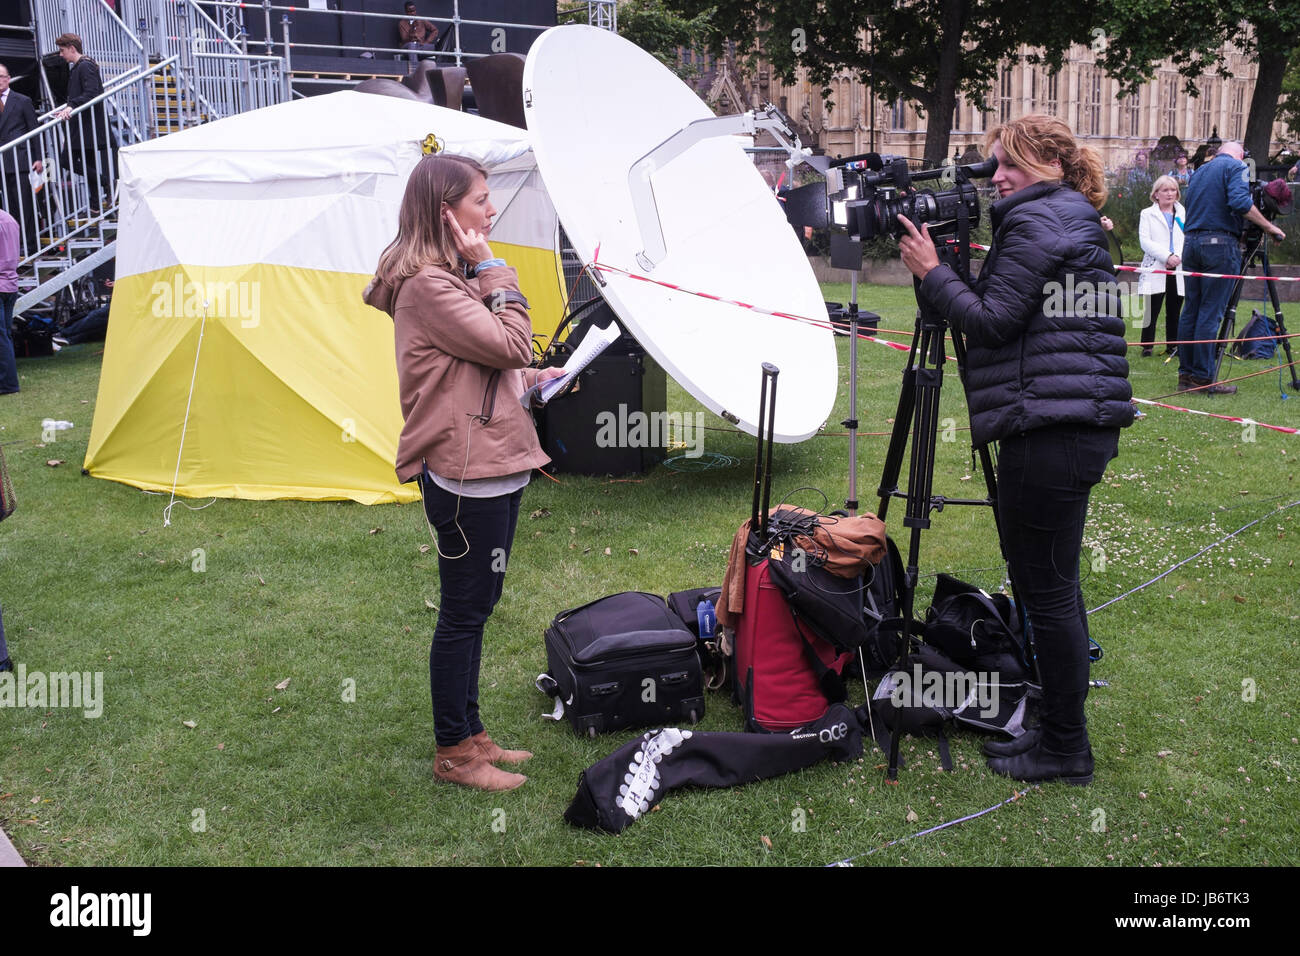 London, UK. 9th June, 2017. International television news organisations report from Westminster following UK General - Stock Image